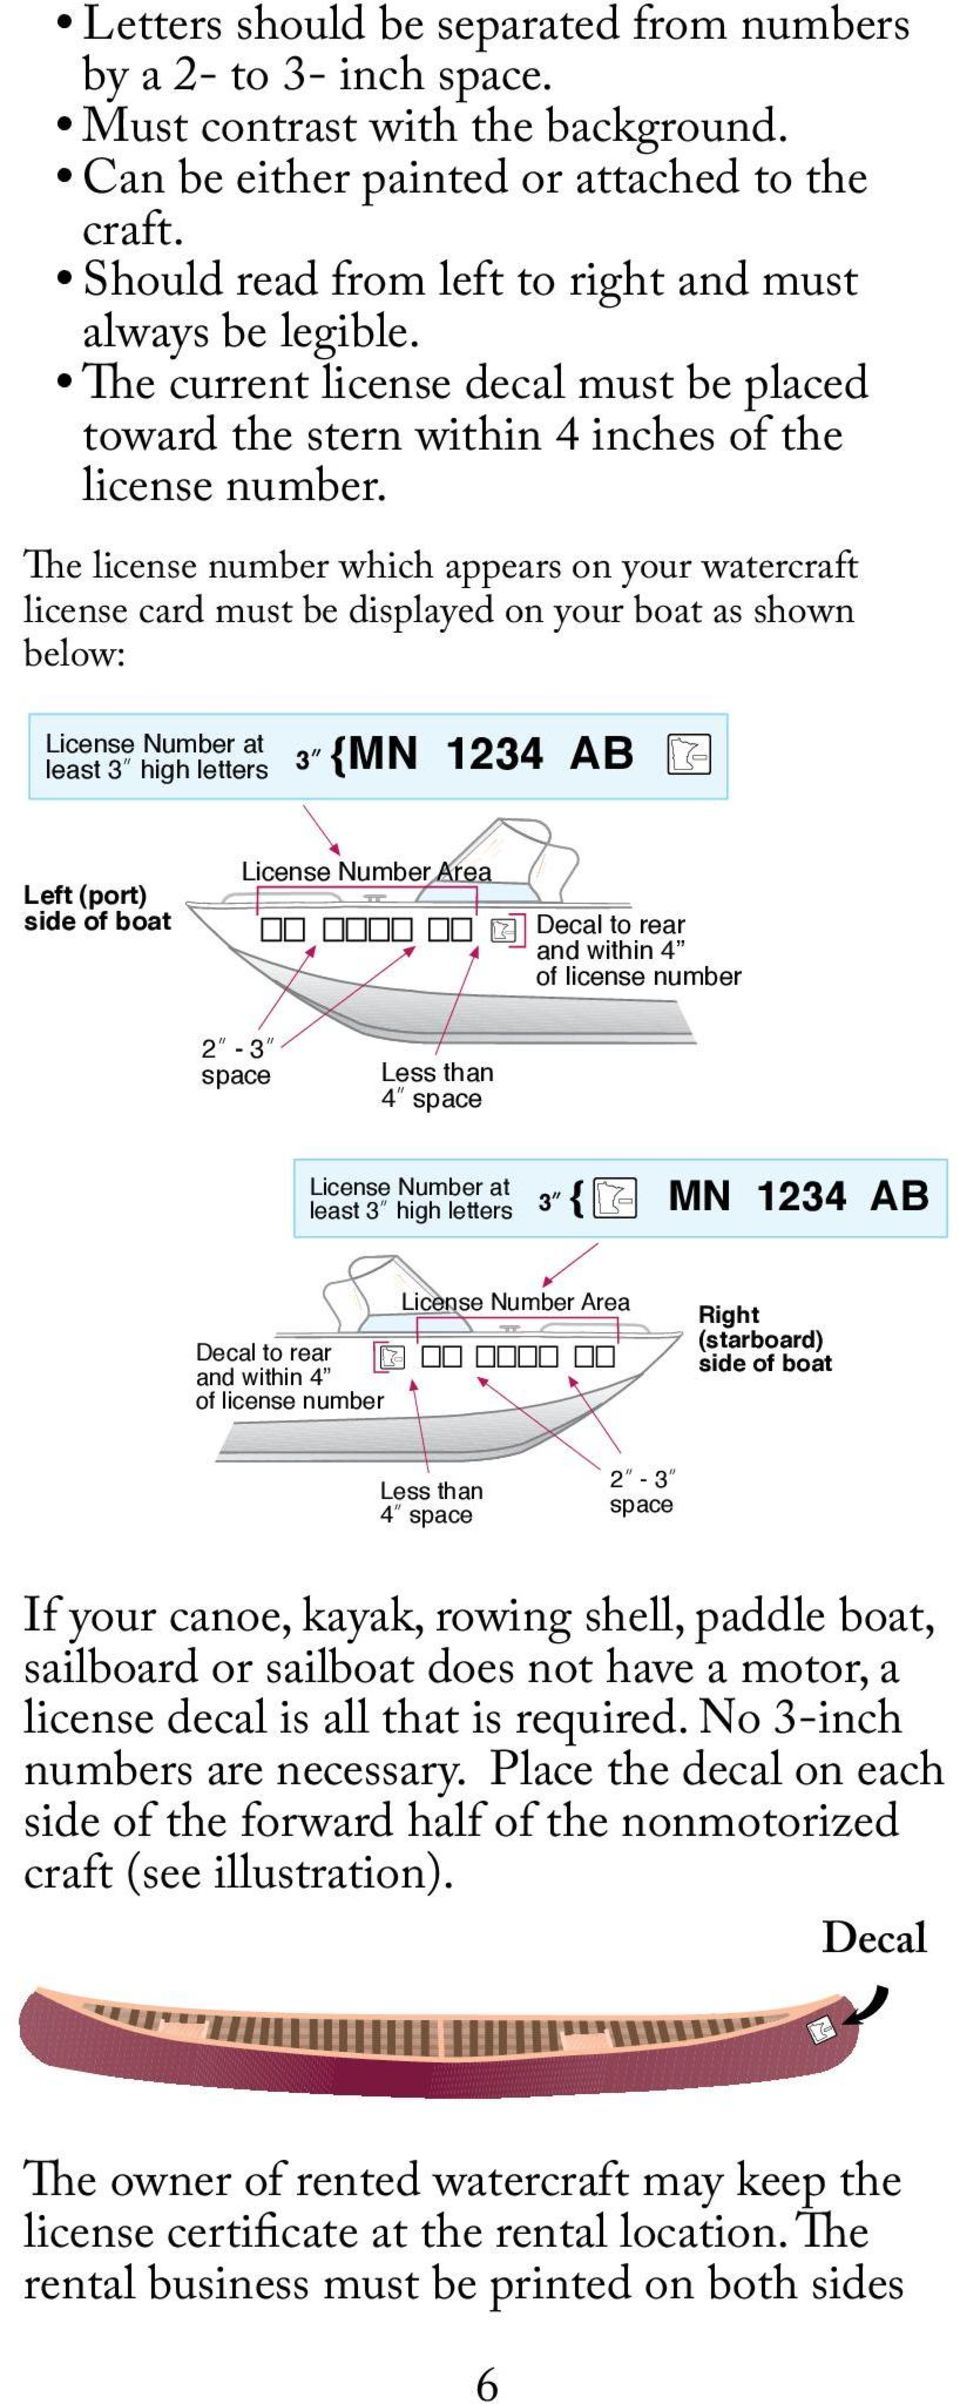 The license number which appears on your watercraft license card must be displayed on your boat as shown below: 95 95 95 If your canoe, kayak, rowing shell, paddle boat, sailboard or sailboat does